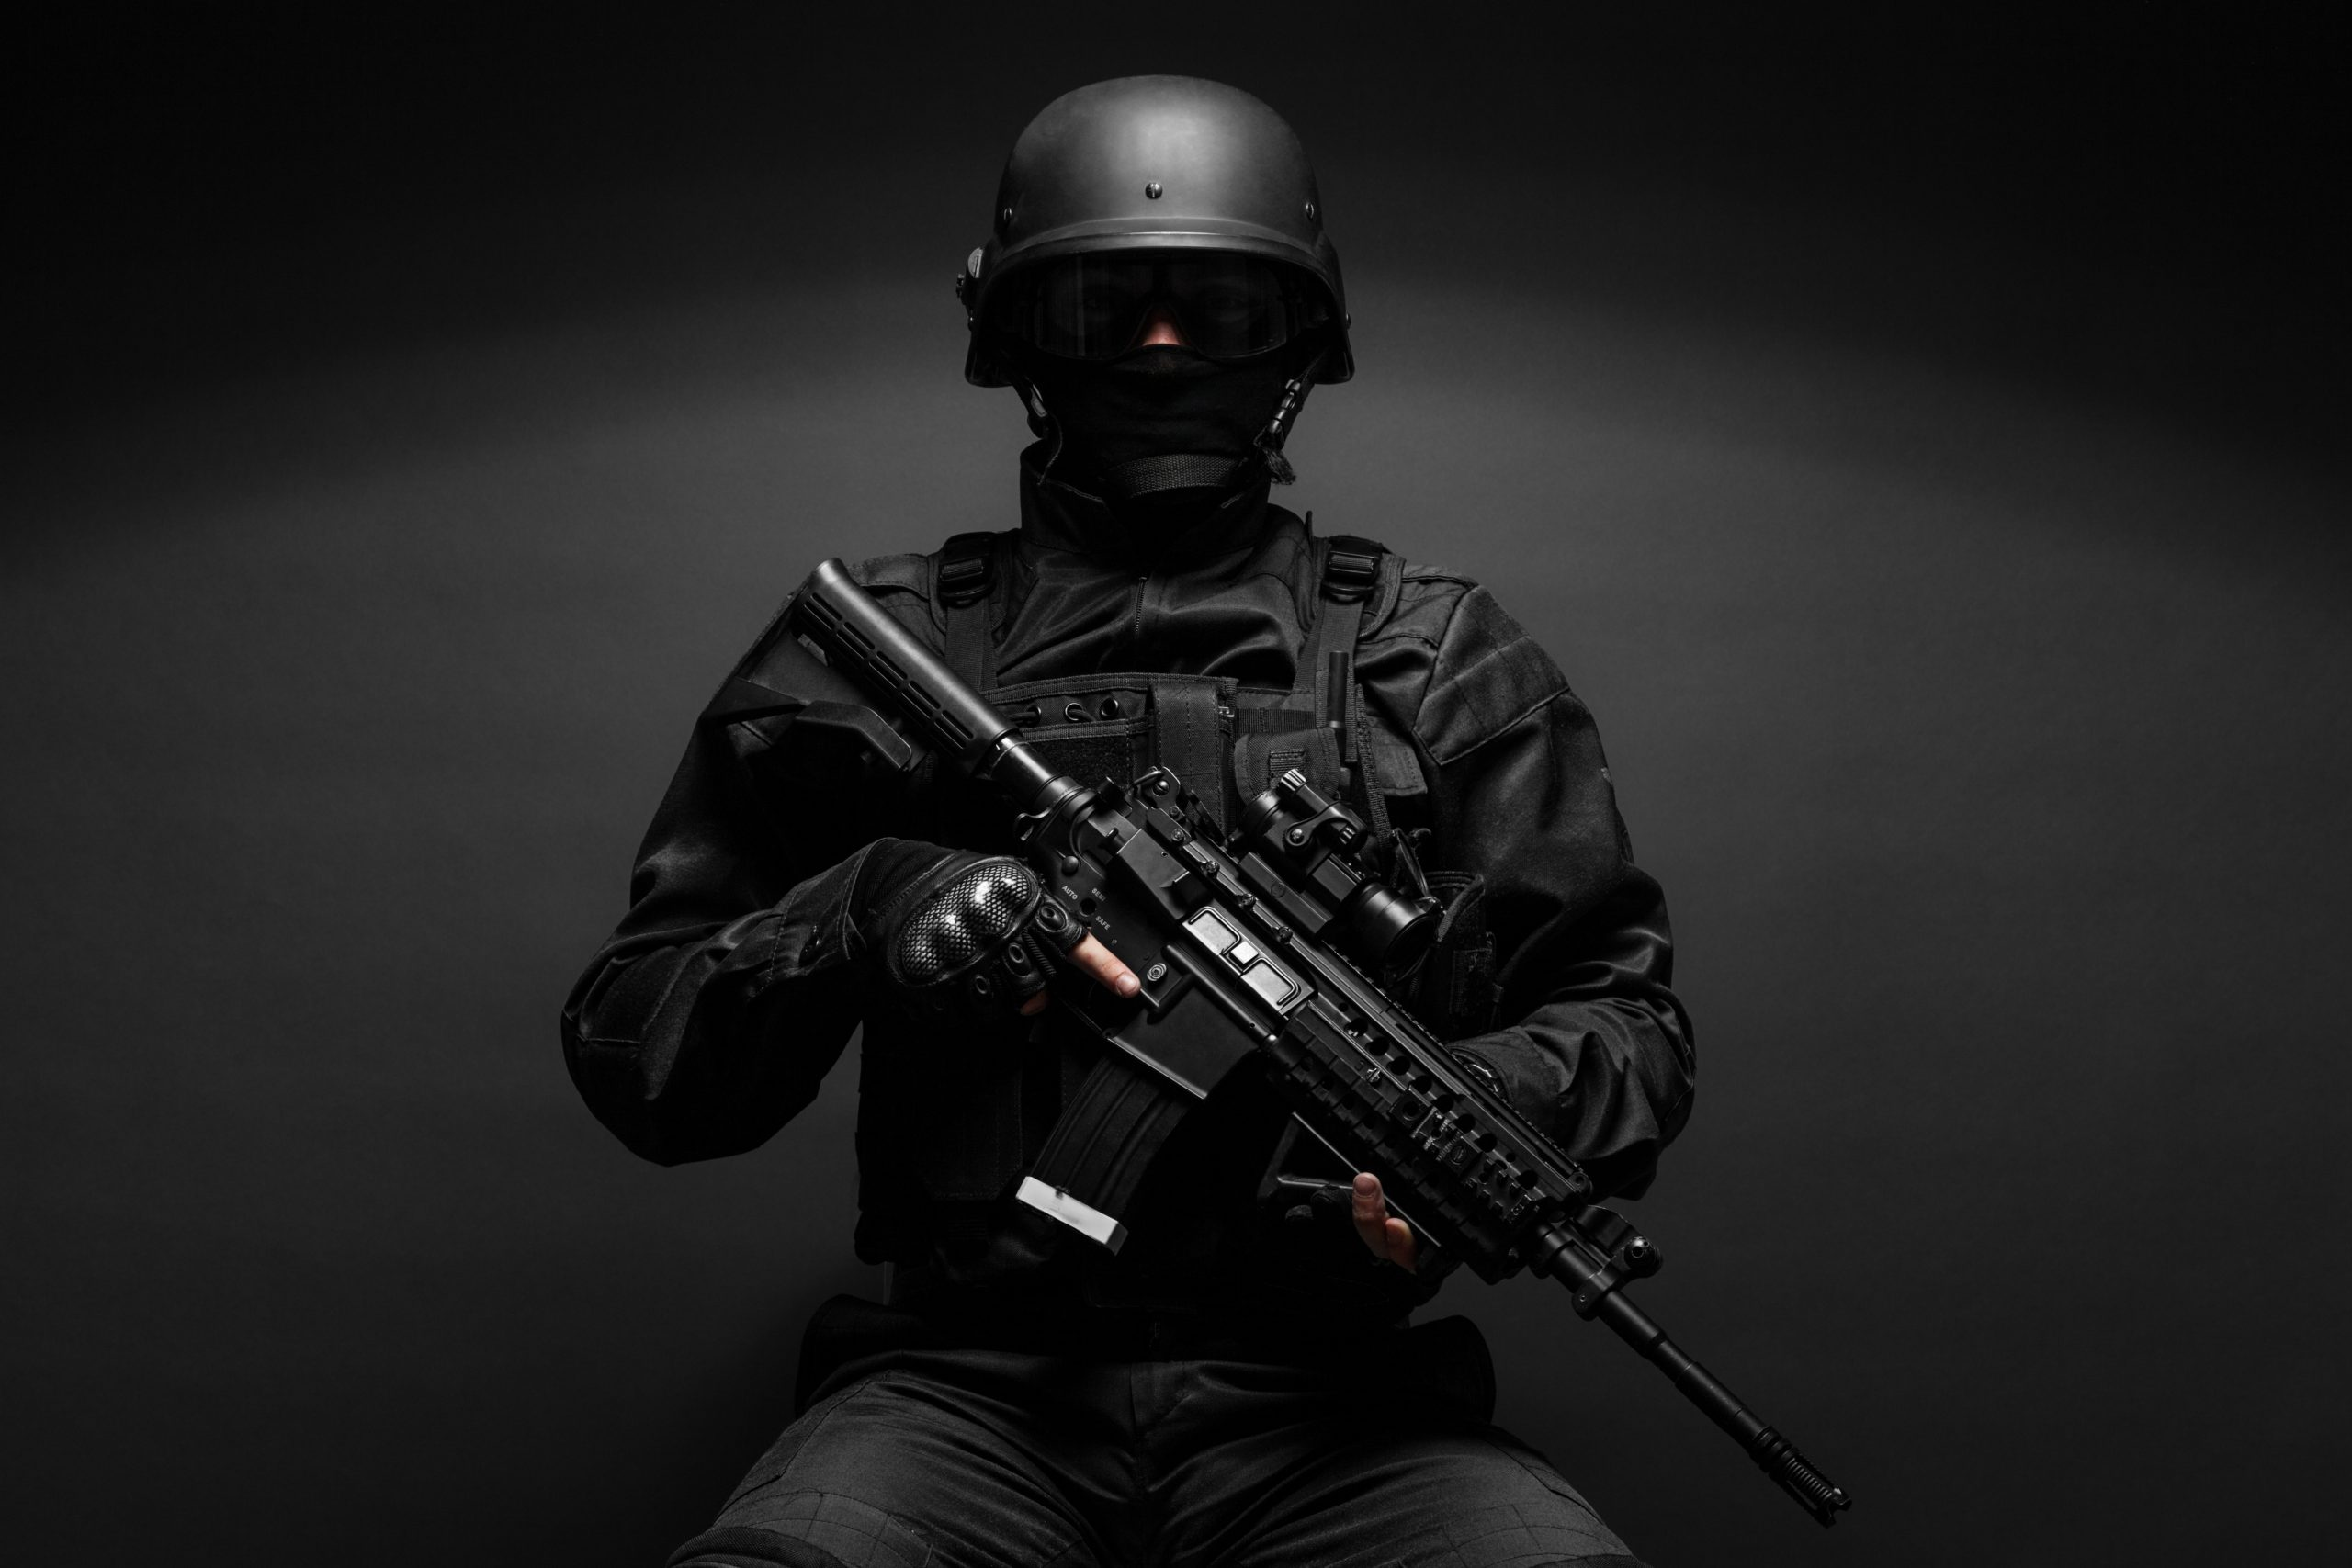 http://www.dreamstime.com/royalty-free-stock-photography-police-officer-weapons-spec-ops-swat-black-uniform-studio-image60987557